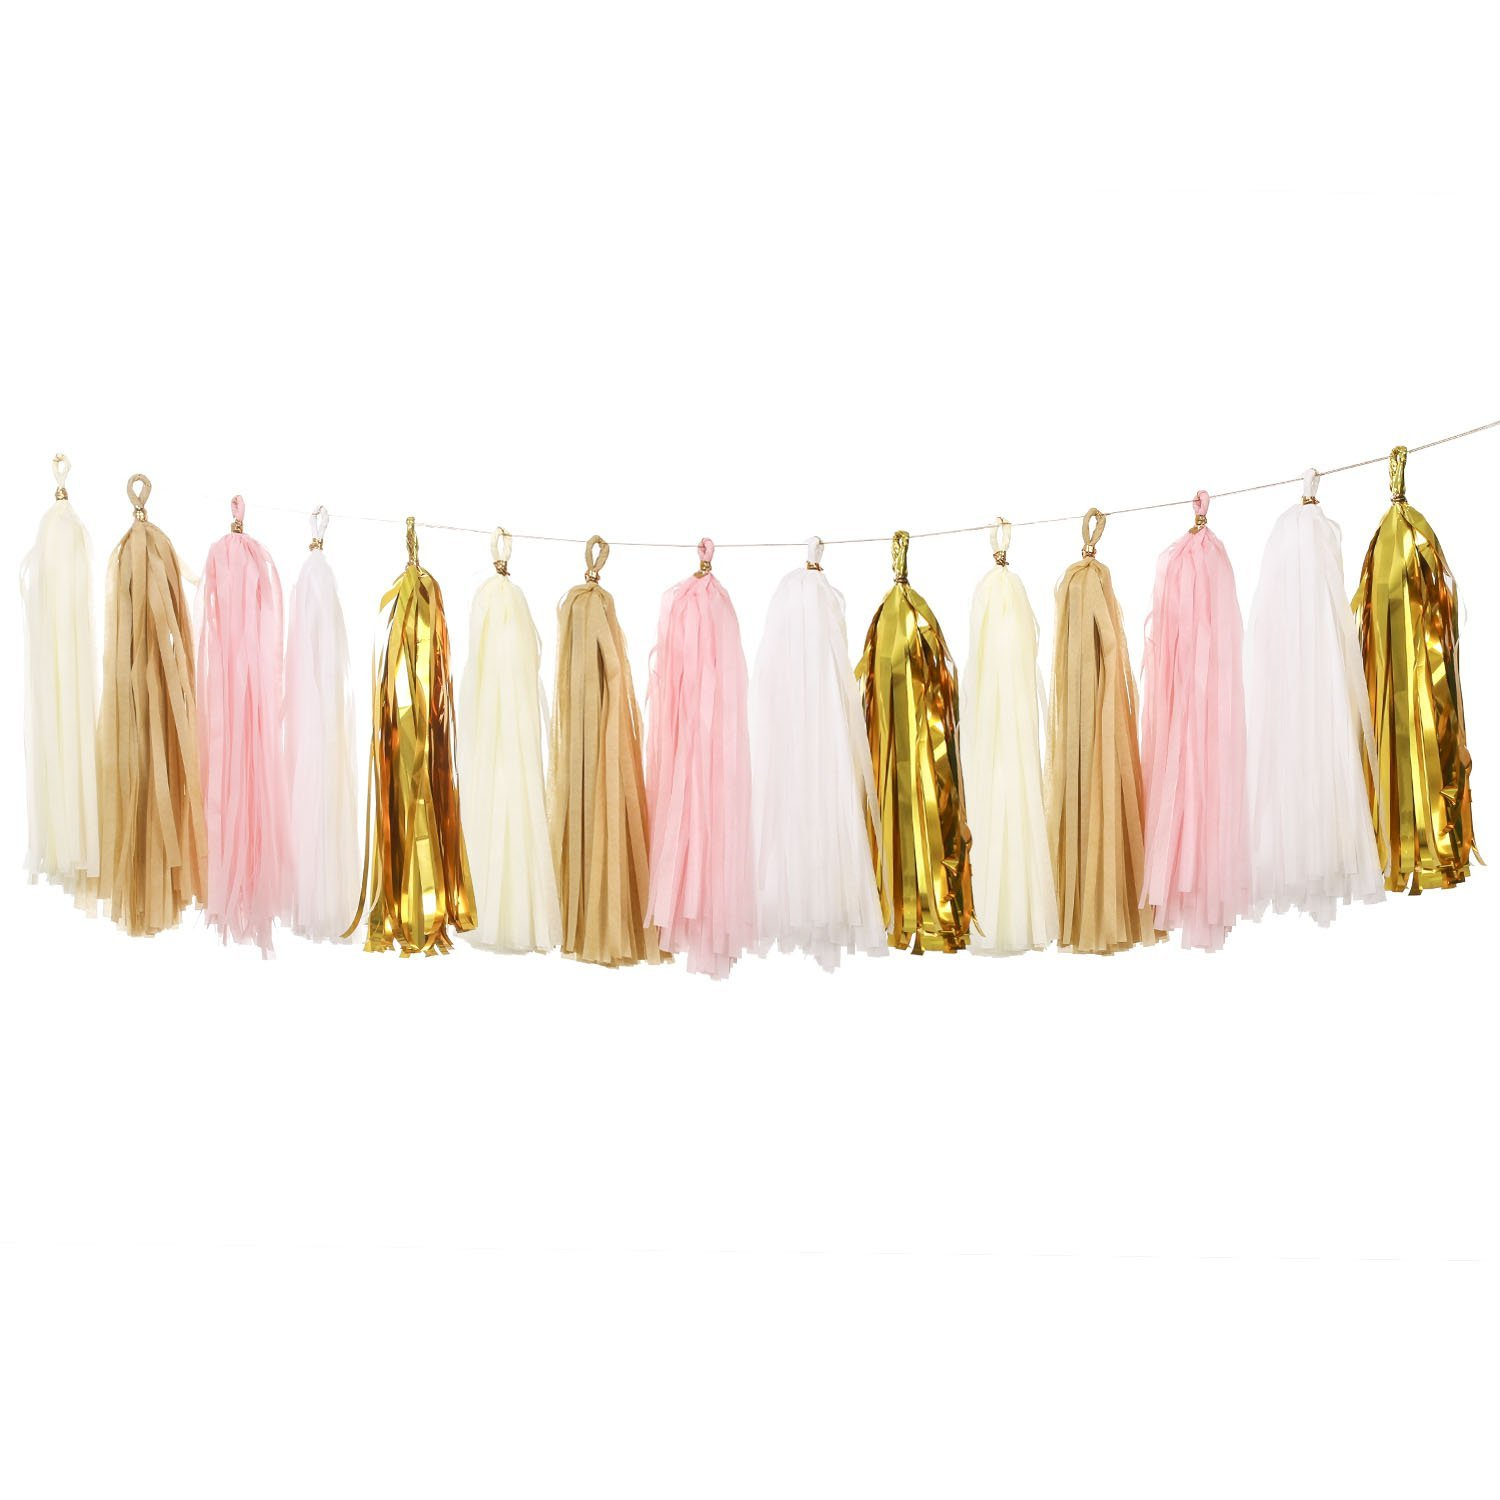 Ling's moment 20 PCS Tassel Garland Banner Tissue Paper Tassels for Wedding Baby Shower Event & Party Supplies DIY Kits - (Pink+Metallic Gold+Ivory+White+Tan)